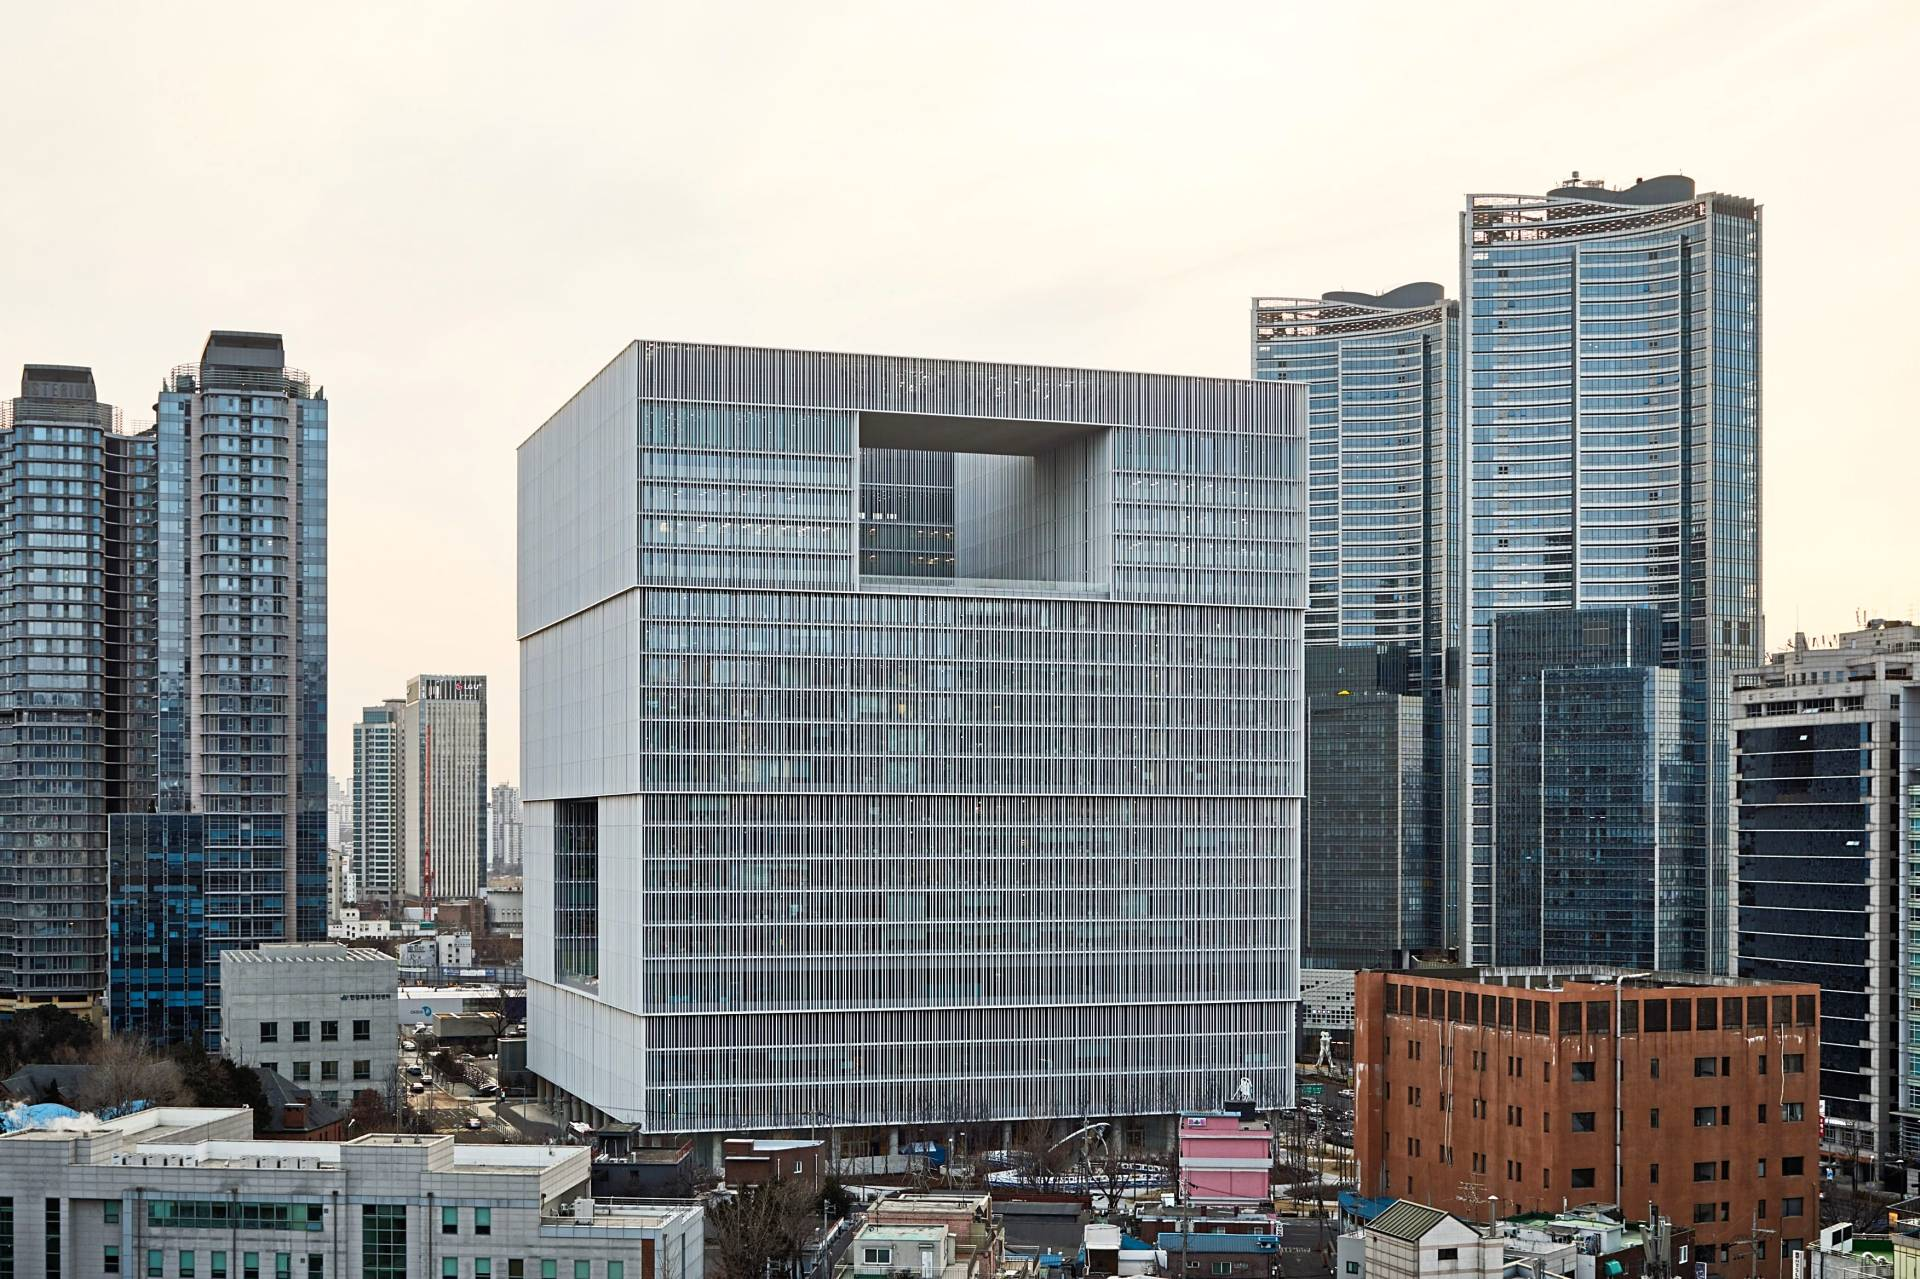 The new Seoul headquarters of Amorepacific, a beauty and cosmetics company. Photos: Design Museum